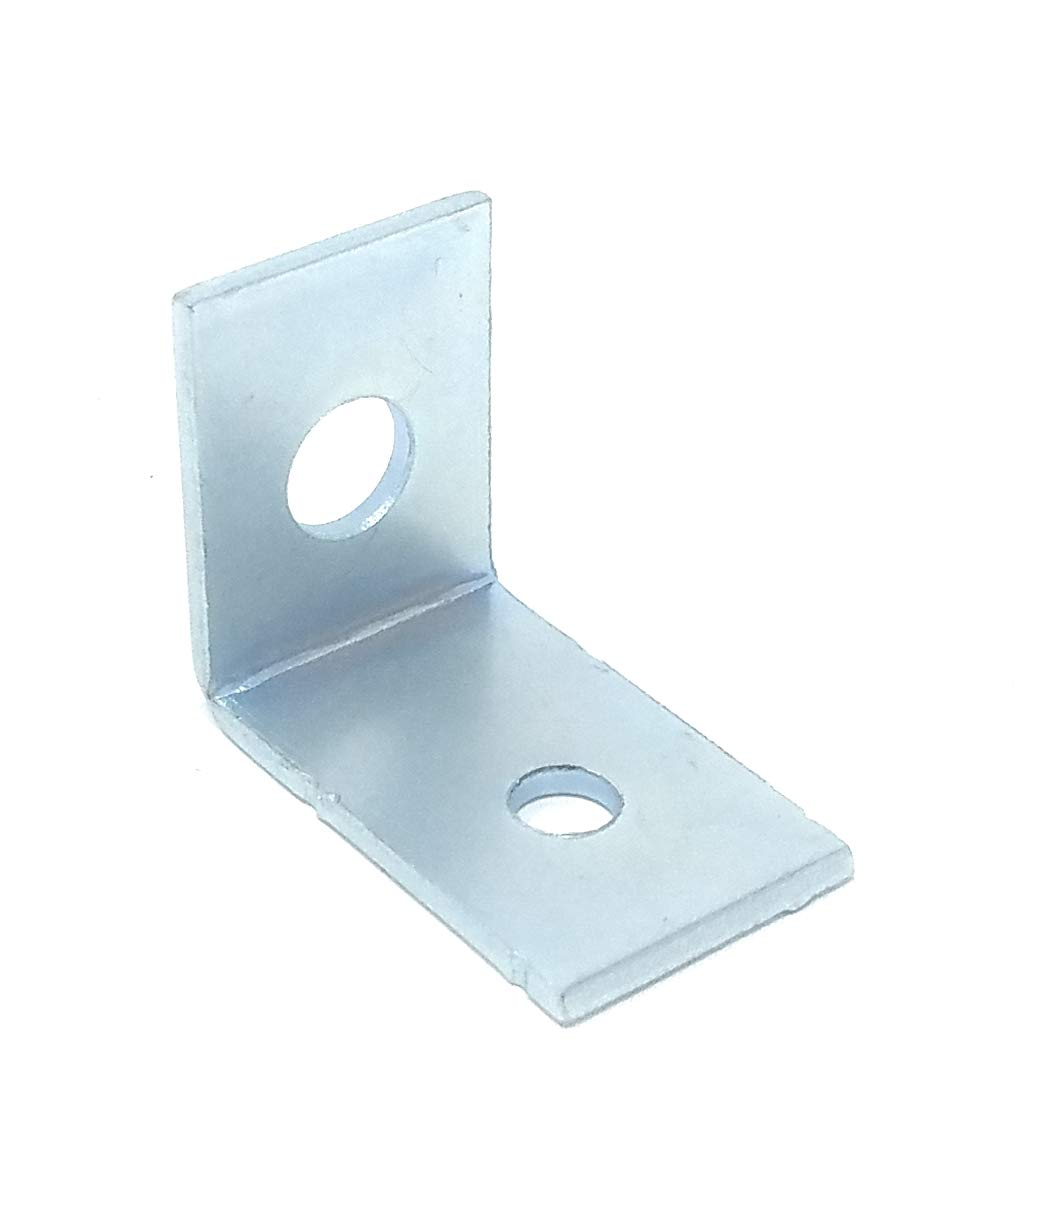 90° Angle Clip For Suspended Ceilings Case of 1000 ~ HOCL-1